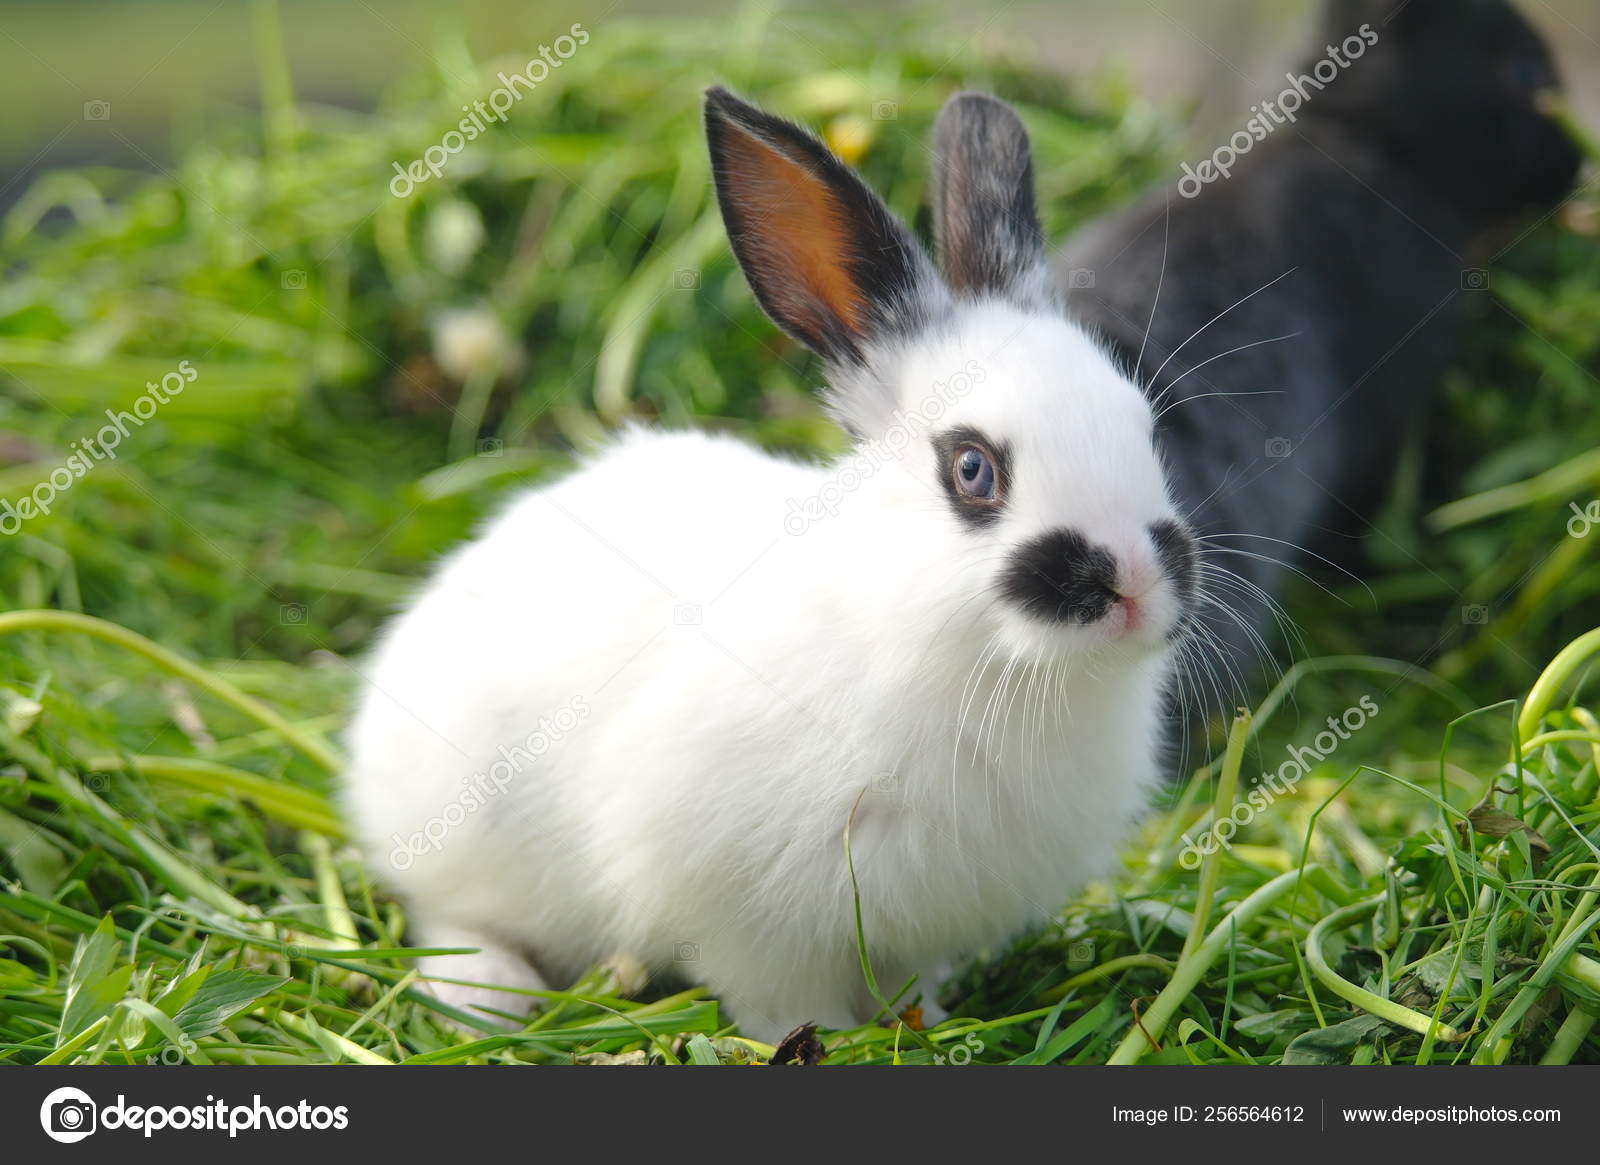 White and black rabbits on the grass. closeup